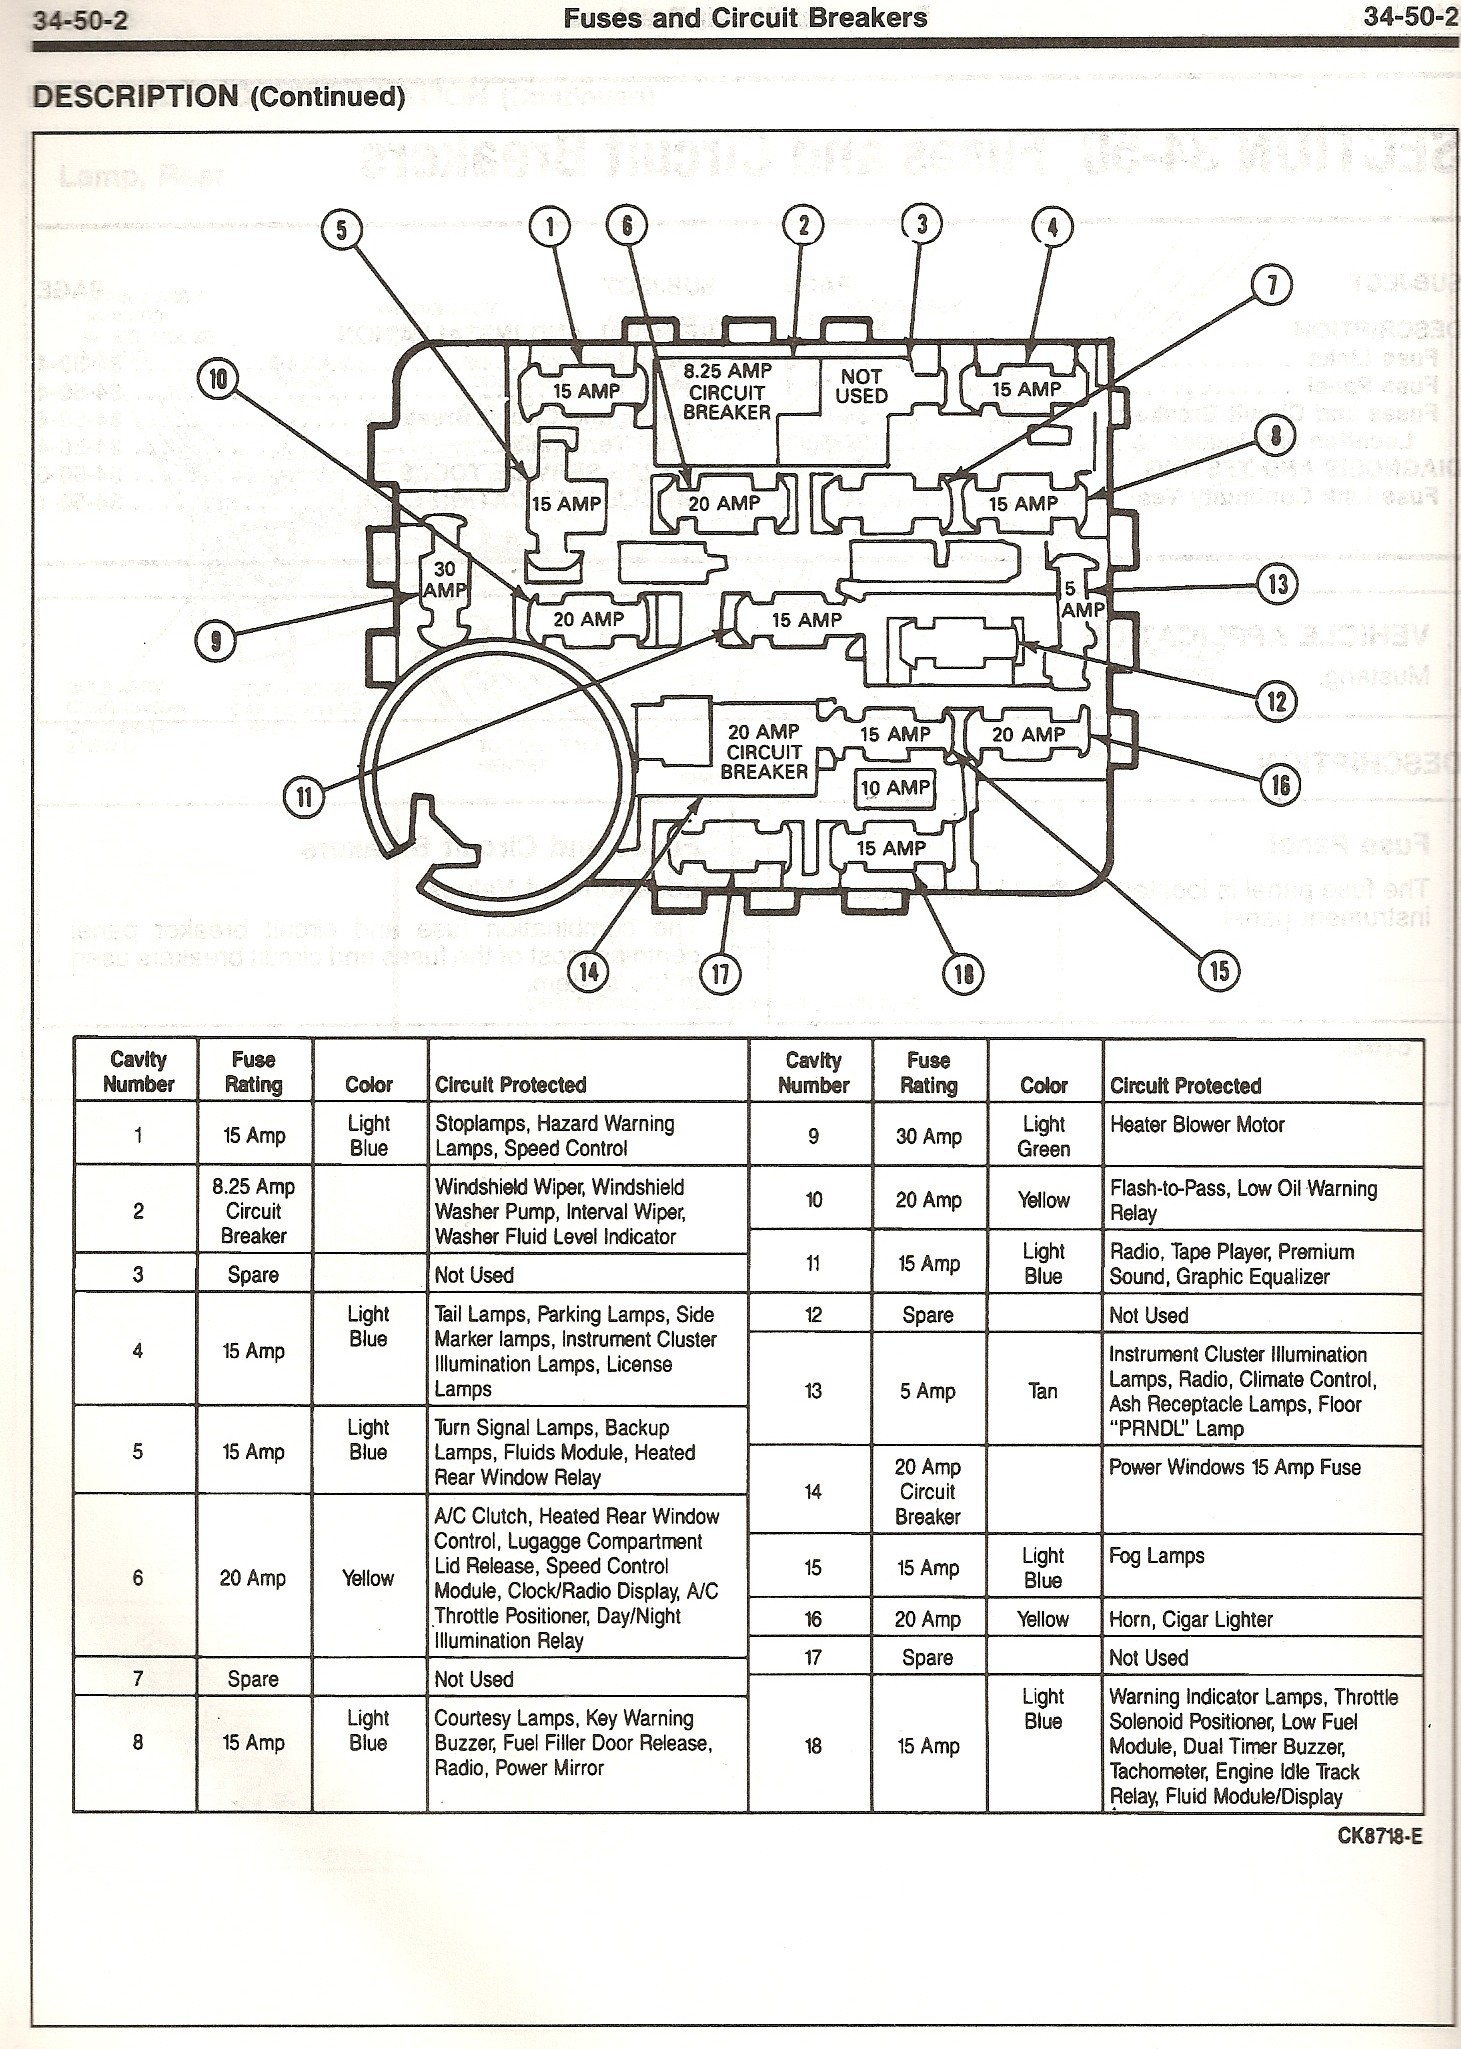 2007 ford Explorer Engine Diagram Fuse Box Diagrams Wiring Diagram Of 2007  ford Explorer Engine Diagram